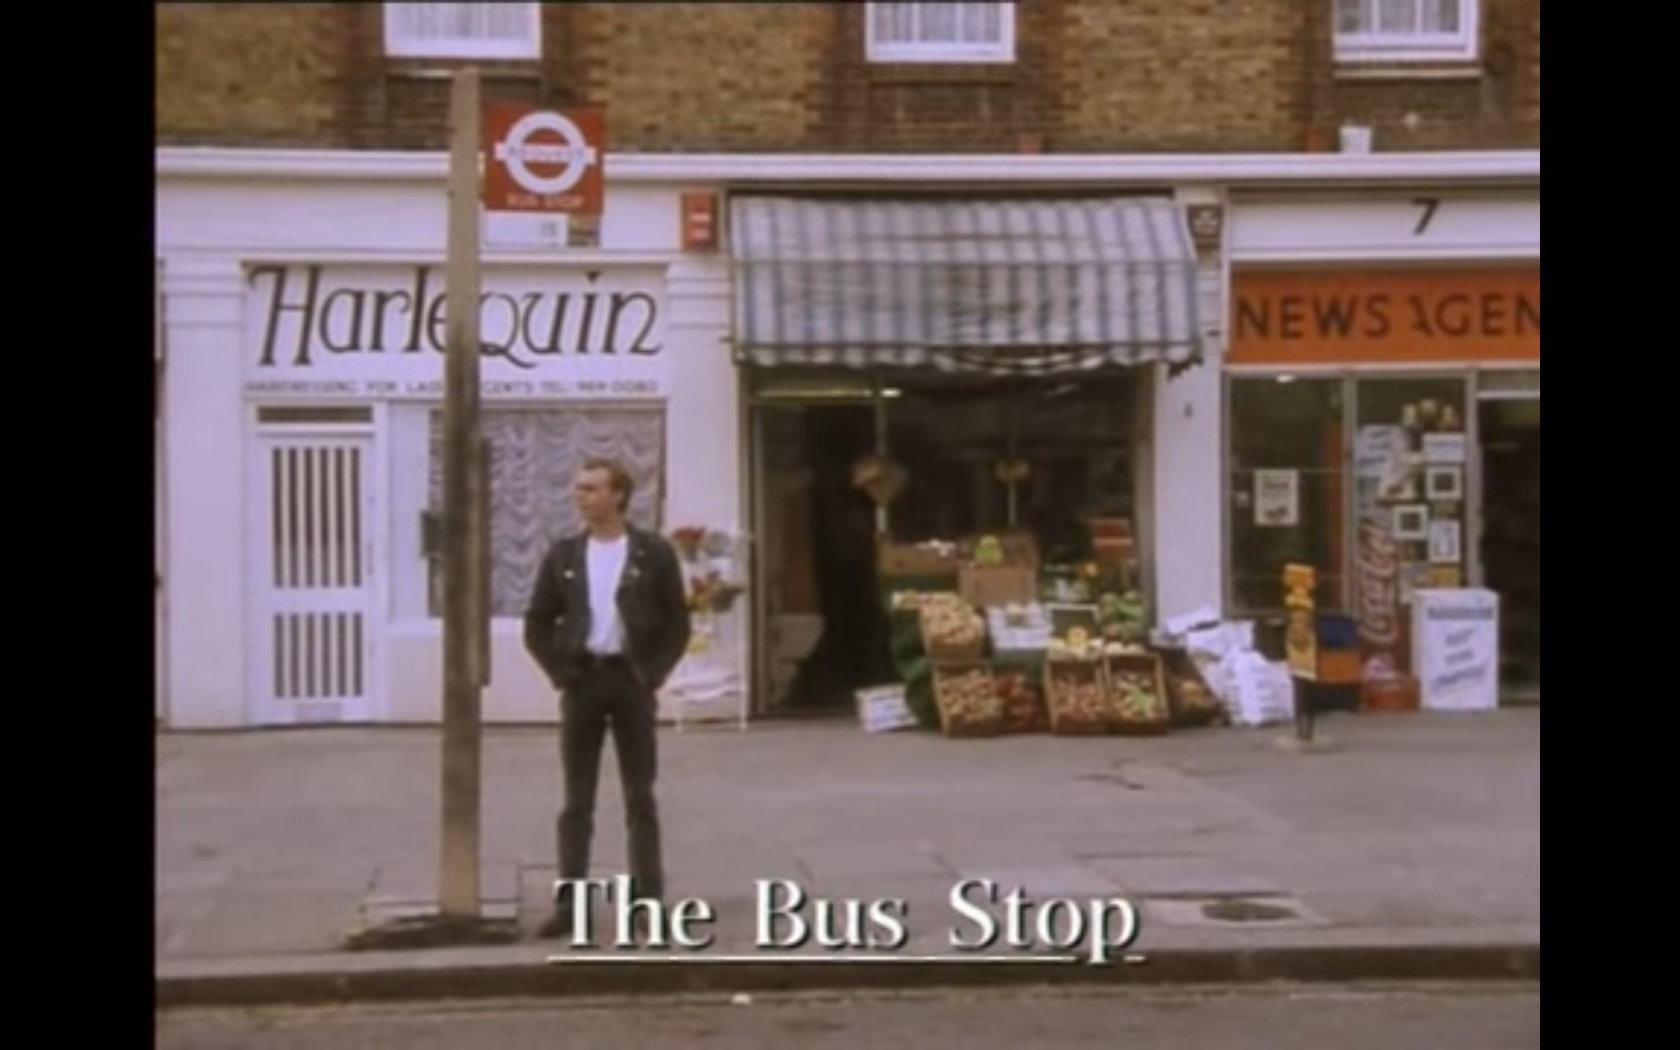 The bus stop mr bean wiki fandom powered by wikia solutioingenieria Image collections